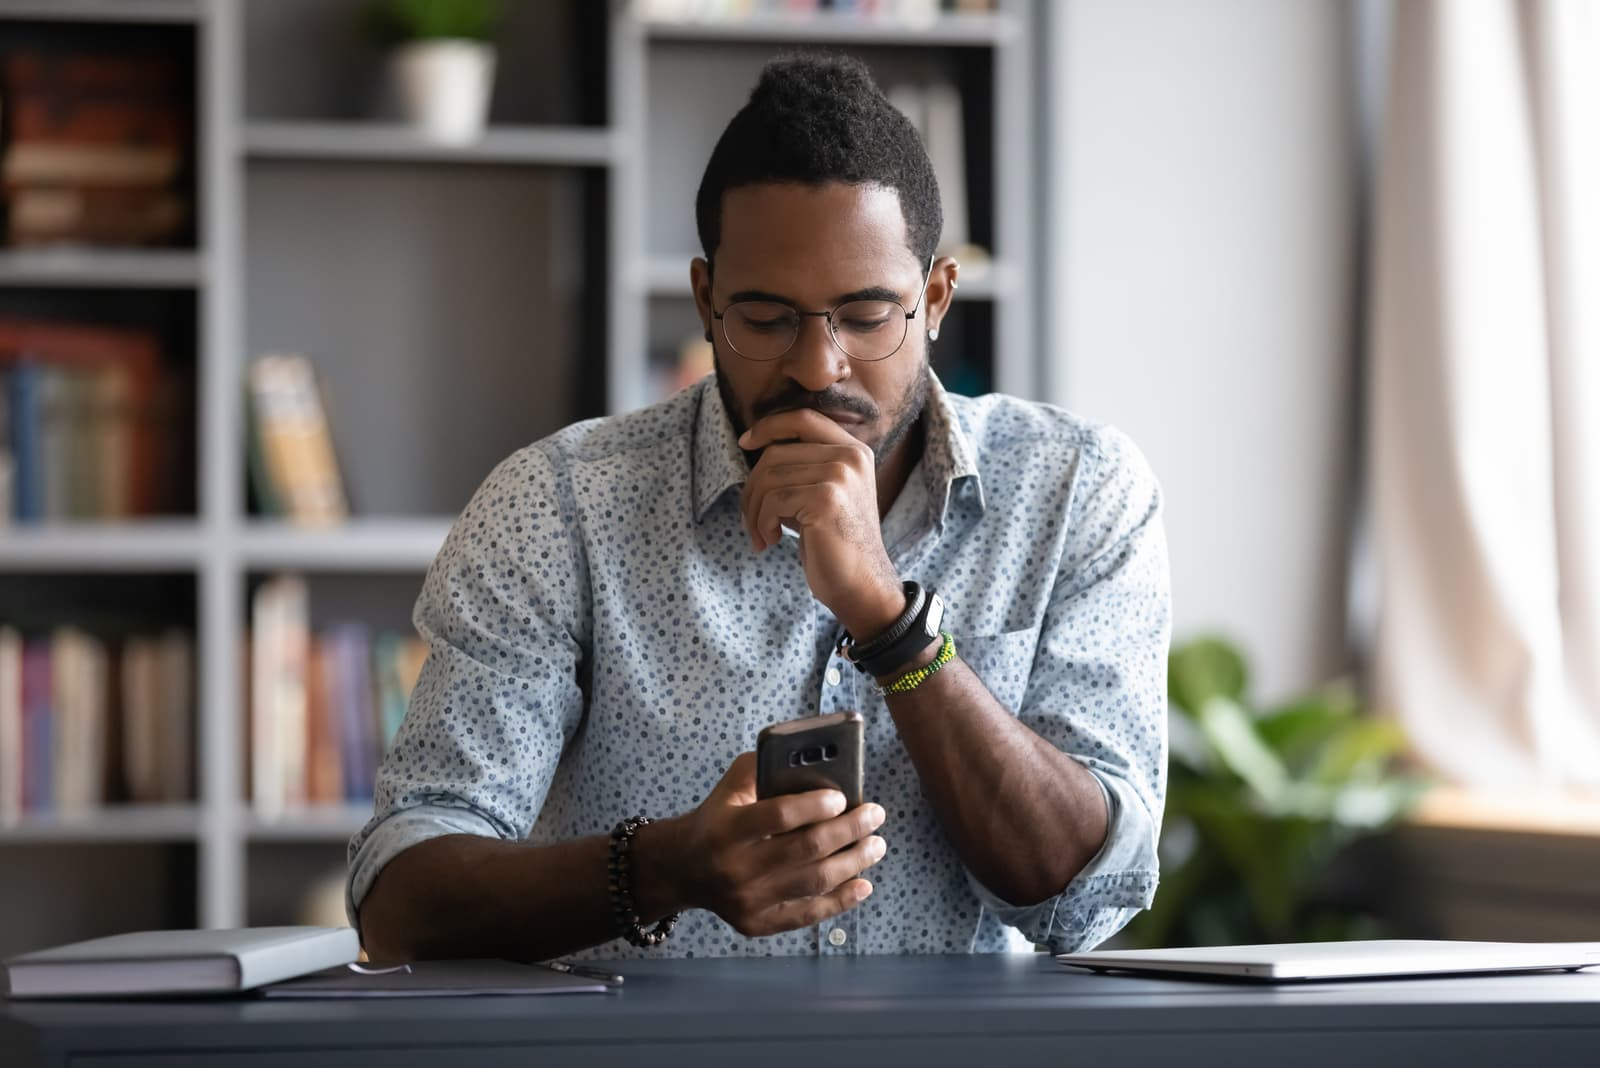 man reading sms on smartphone